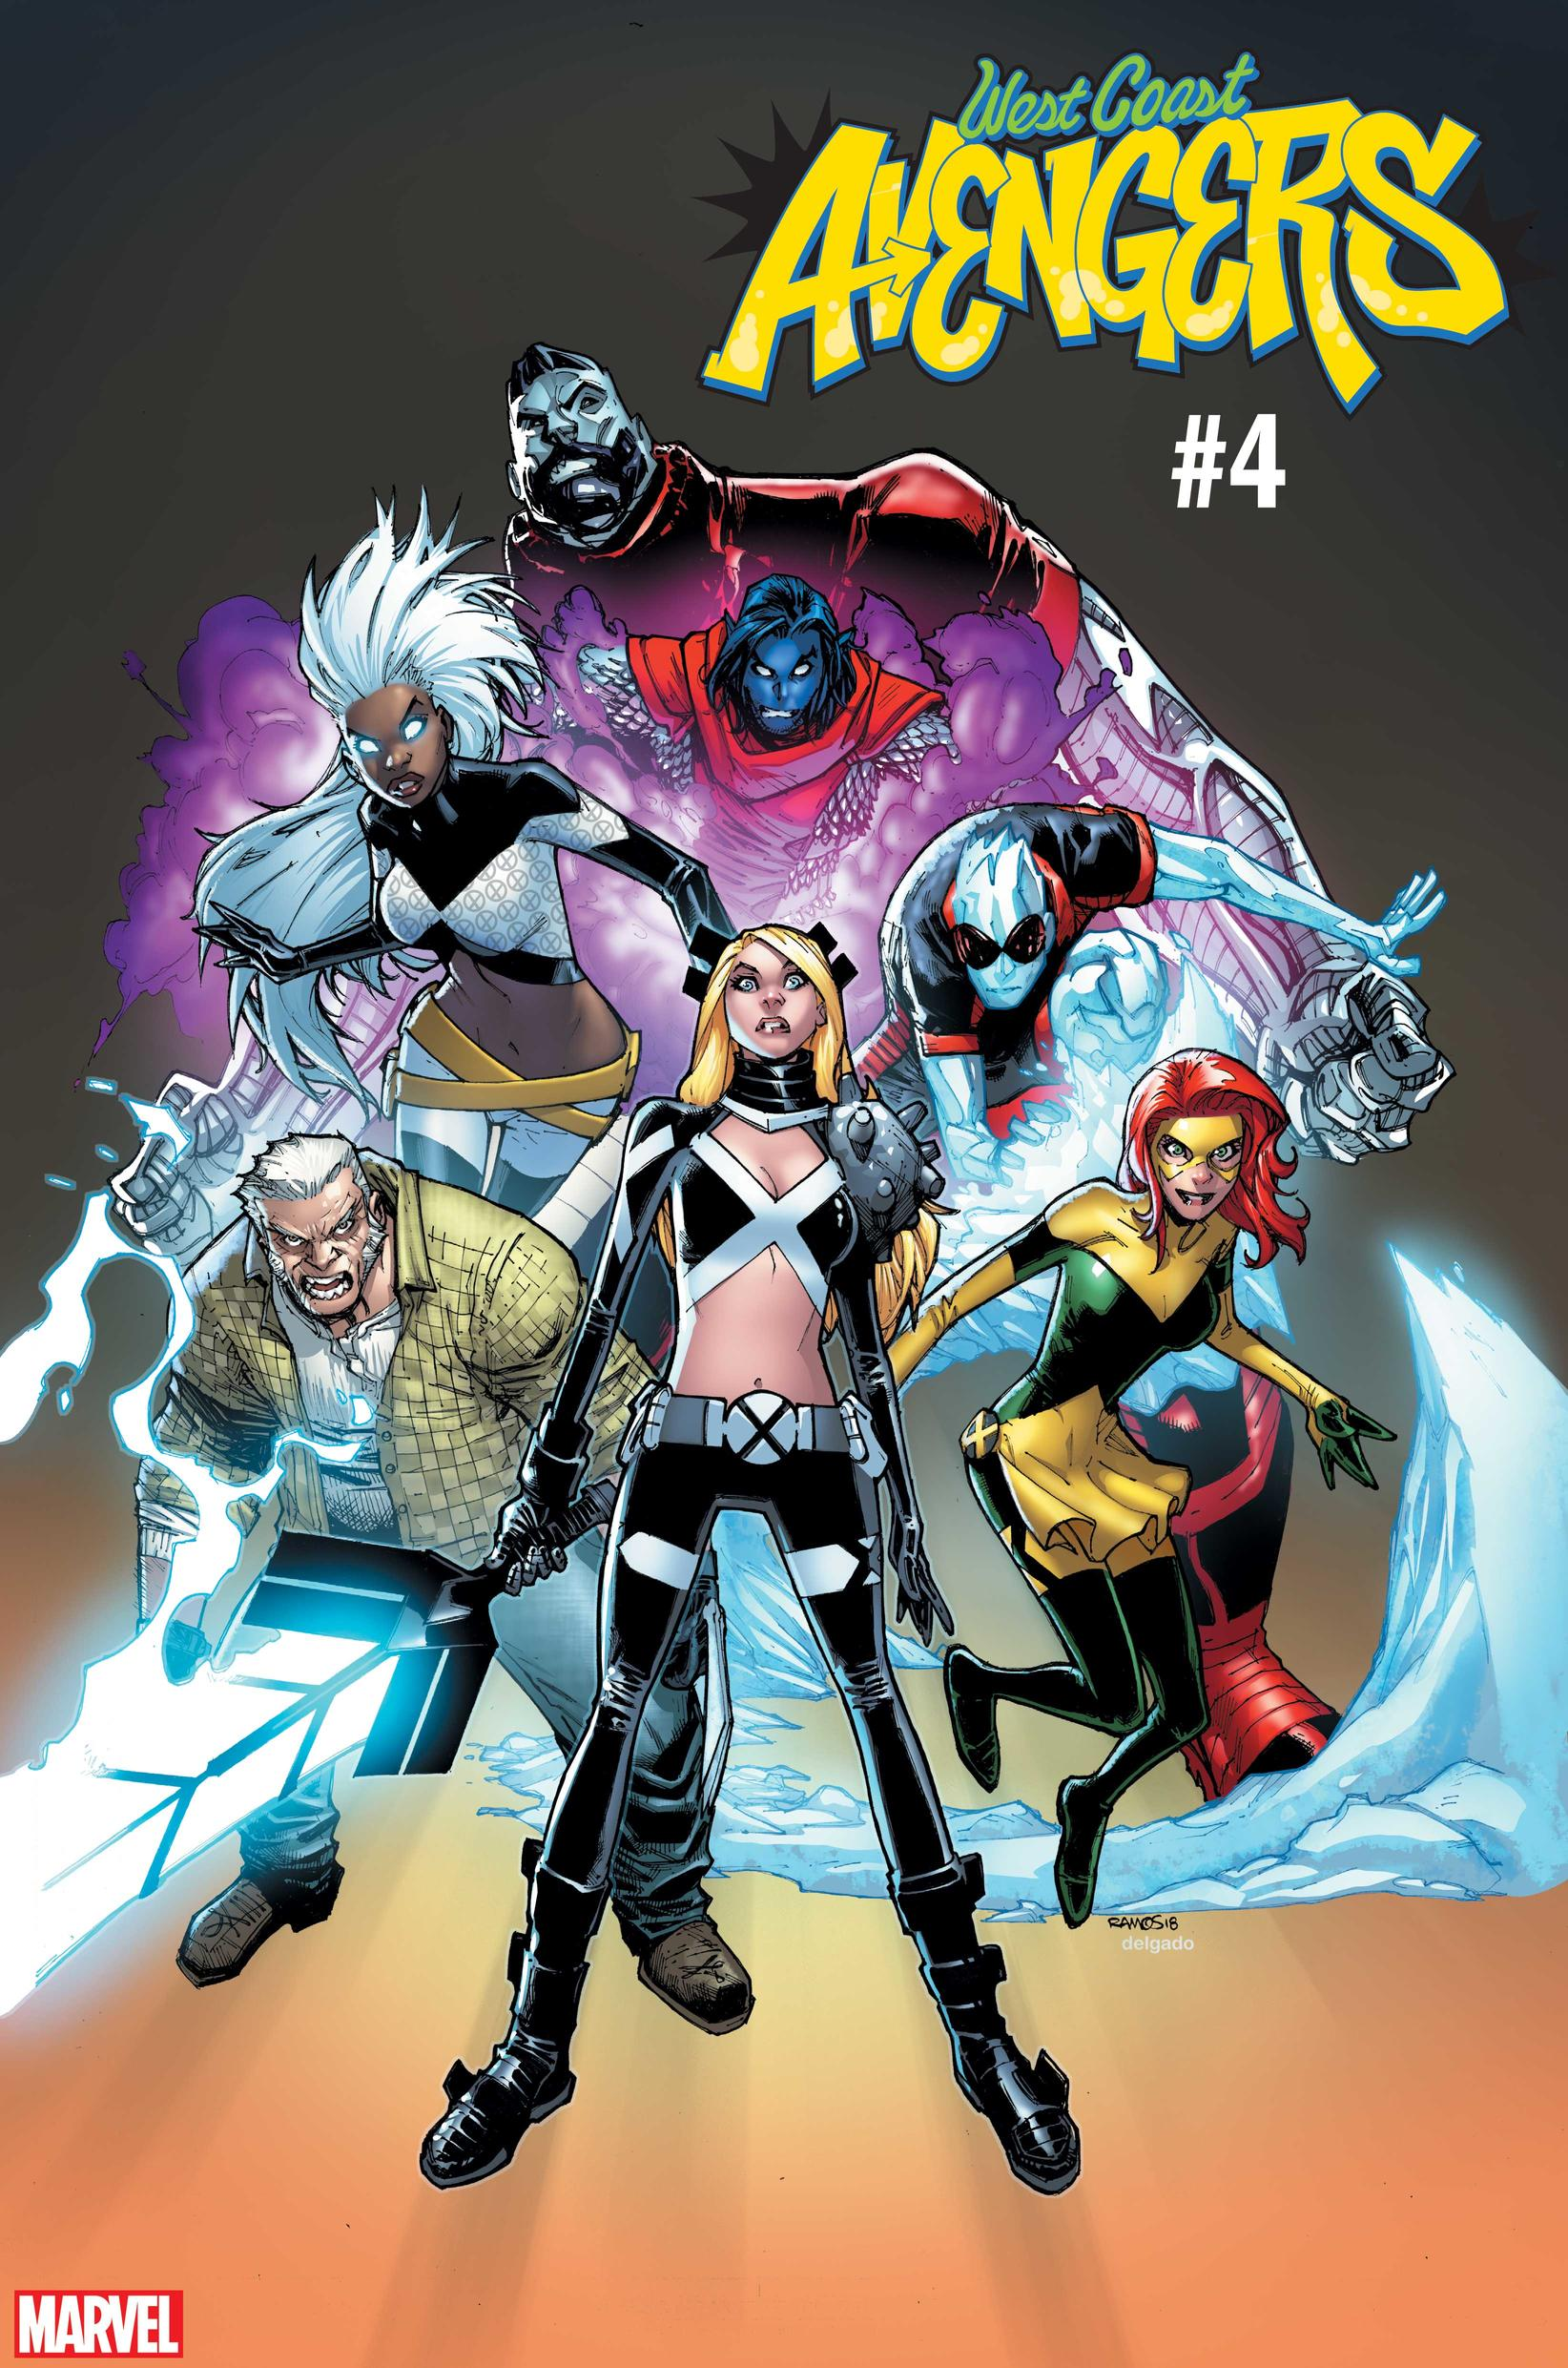 WEST COAST AVENGERS #4 / UNCANNY X-MEN VARIANT COVER by Humberto Ramos